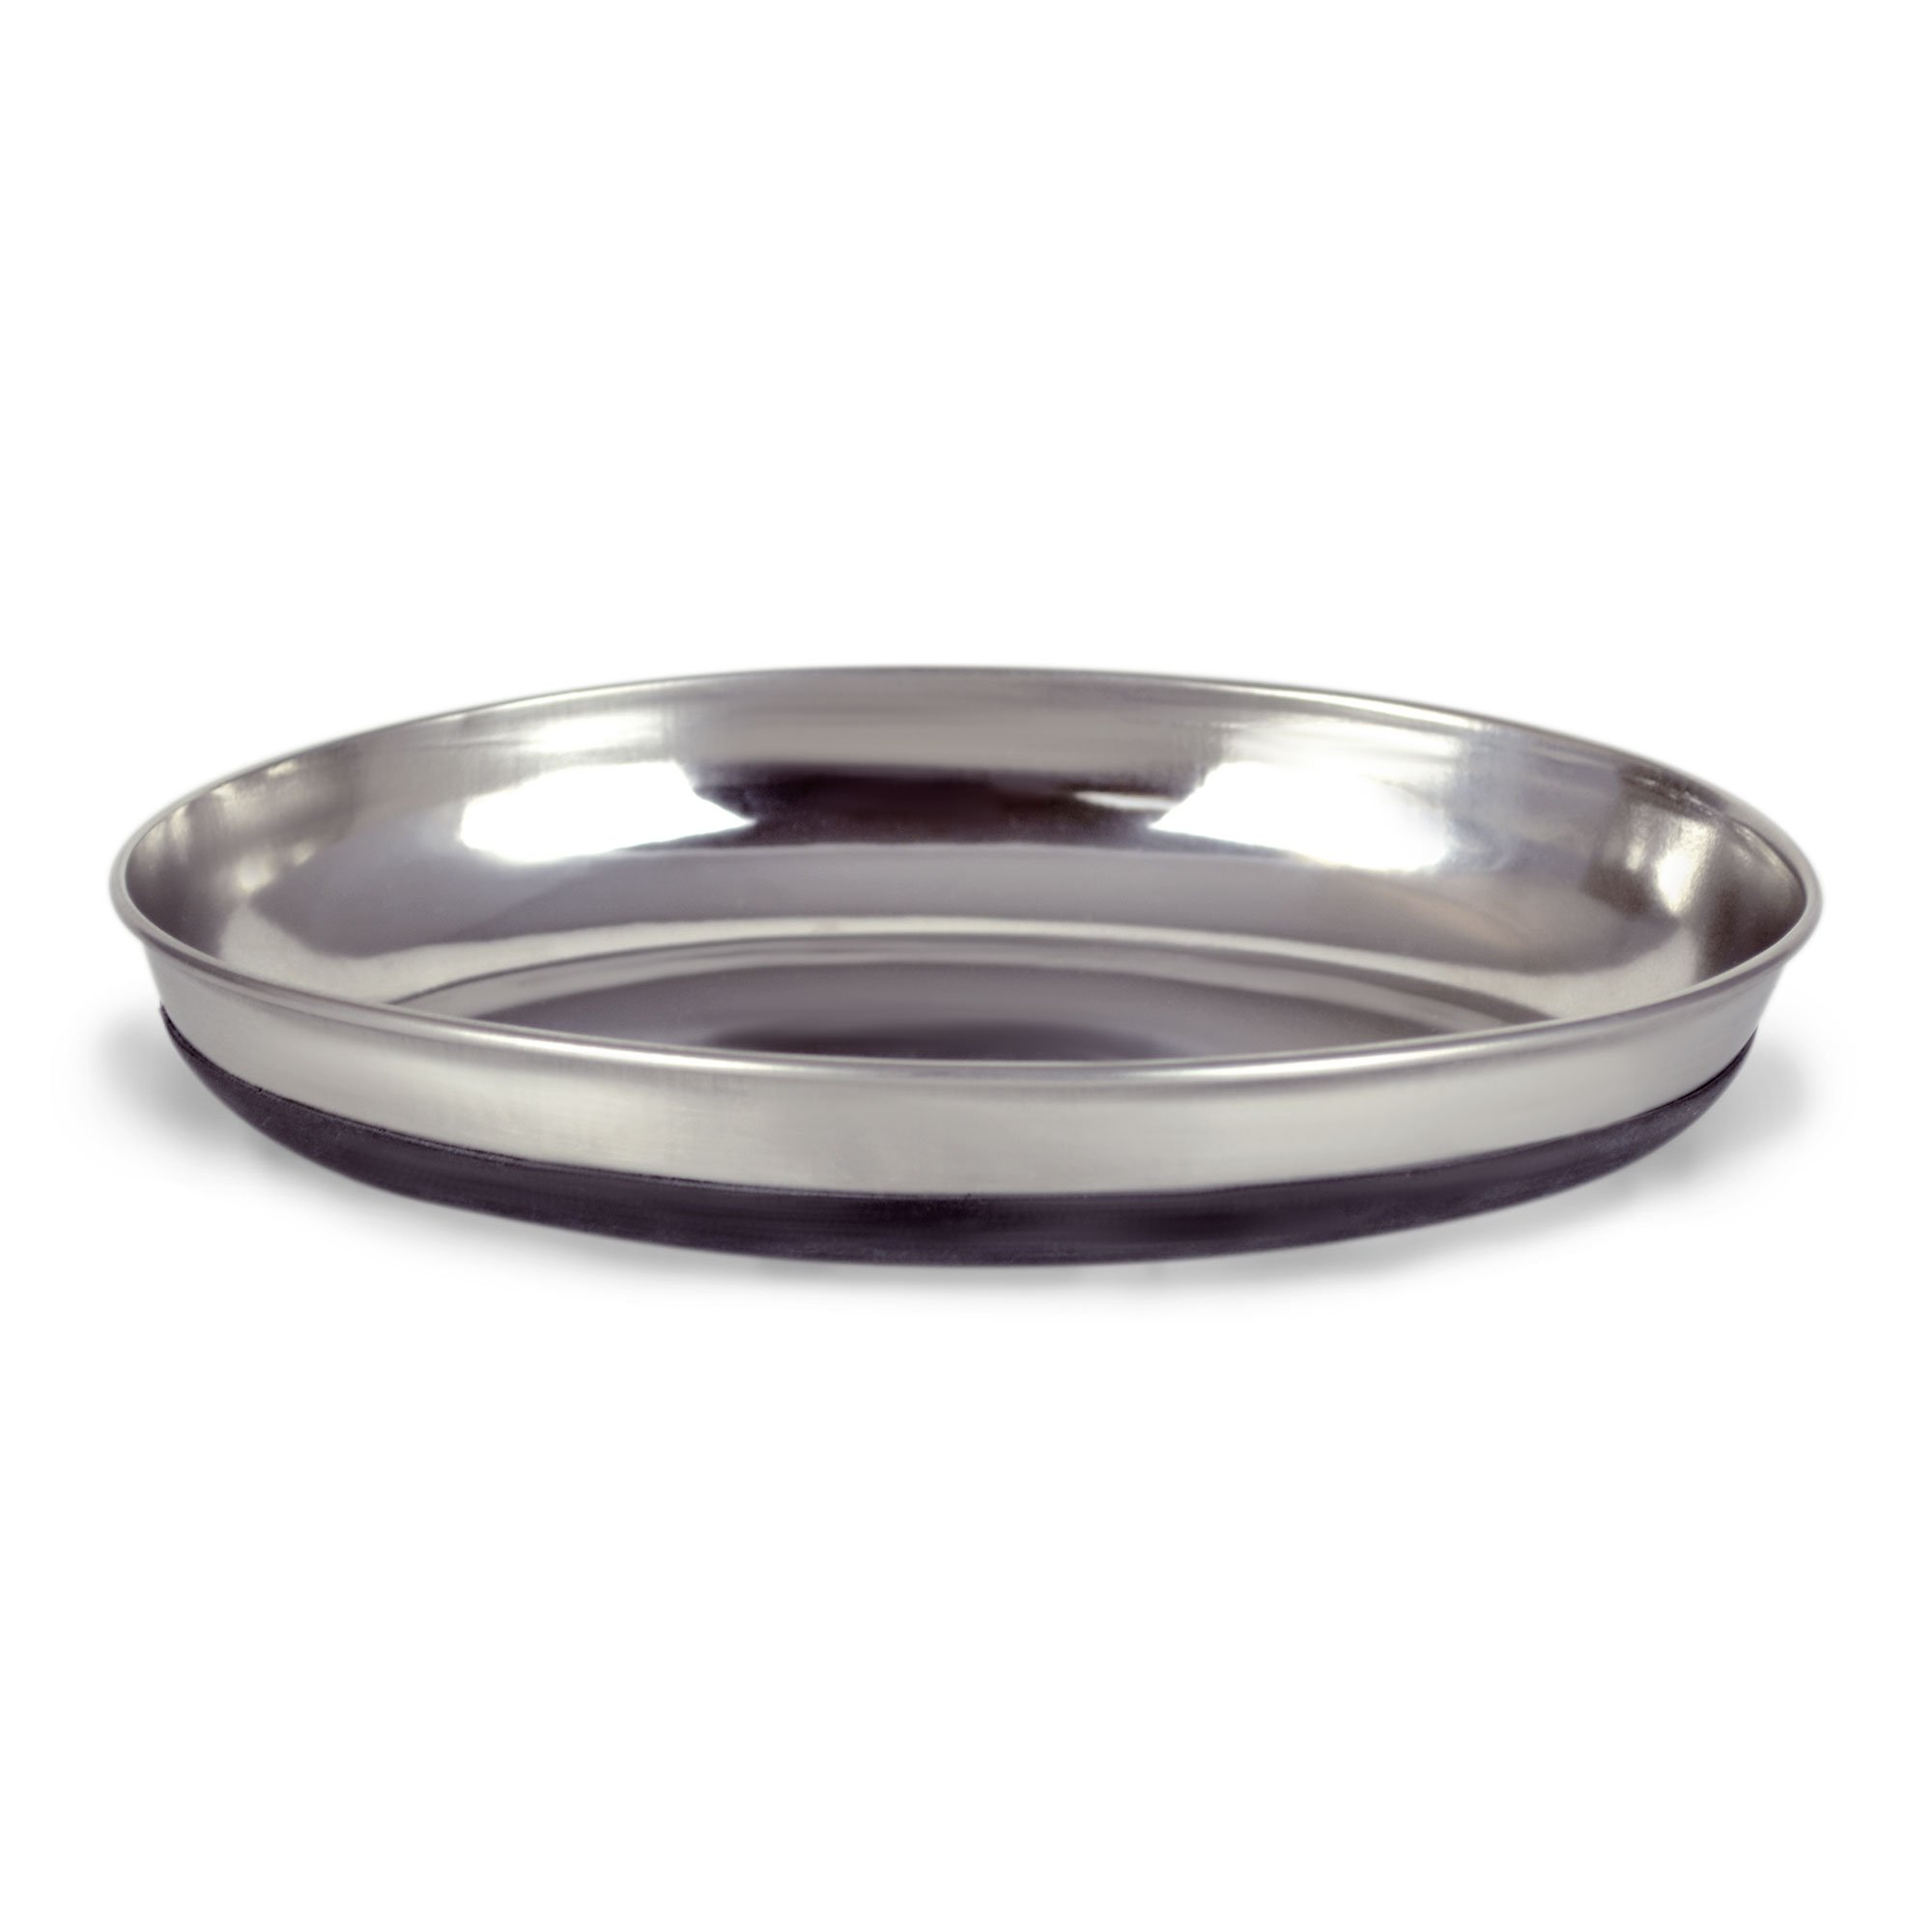 Our Pet's Oval Stainless Steel Cat Bowl